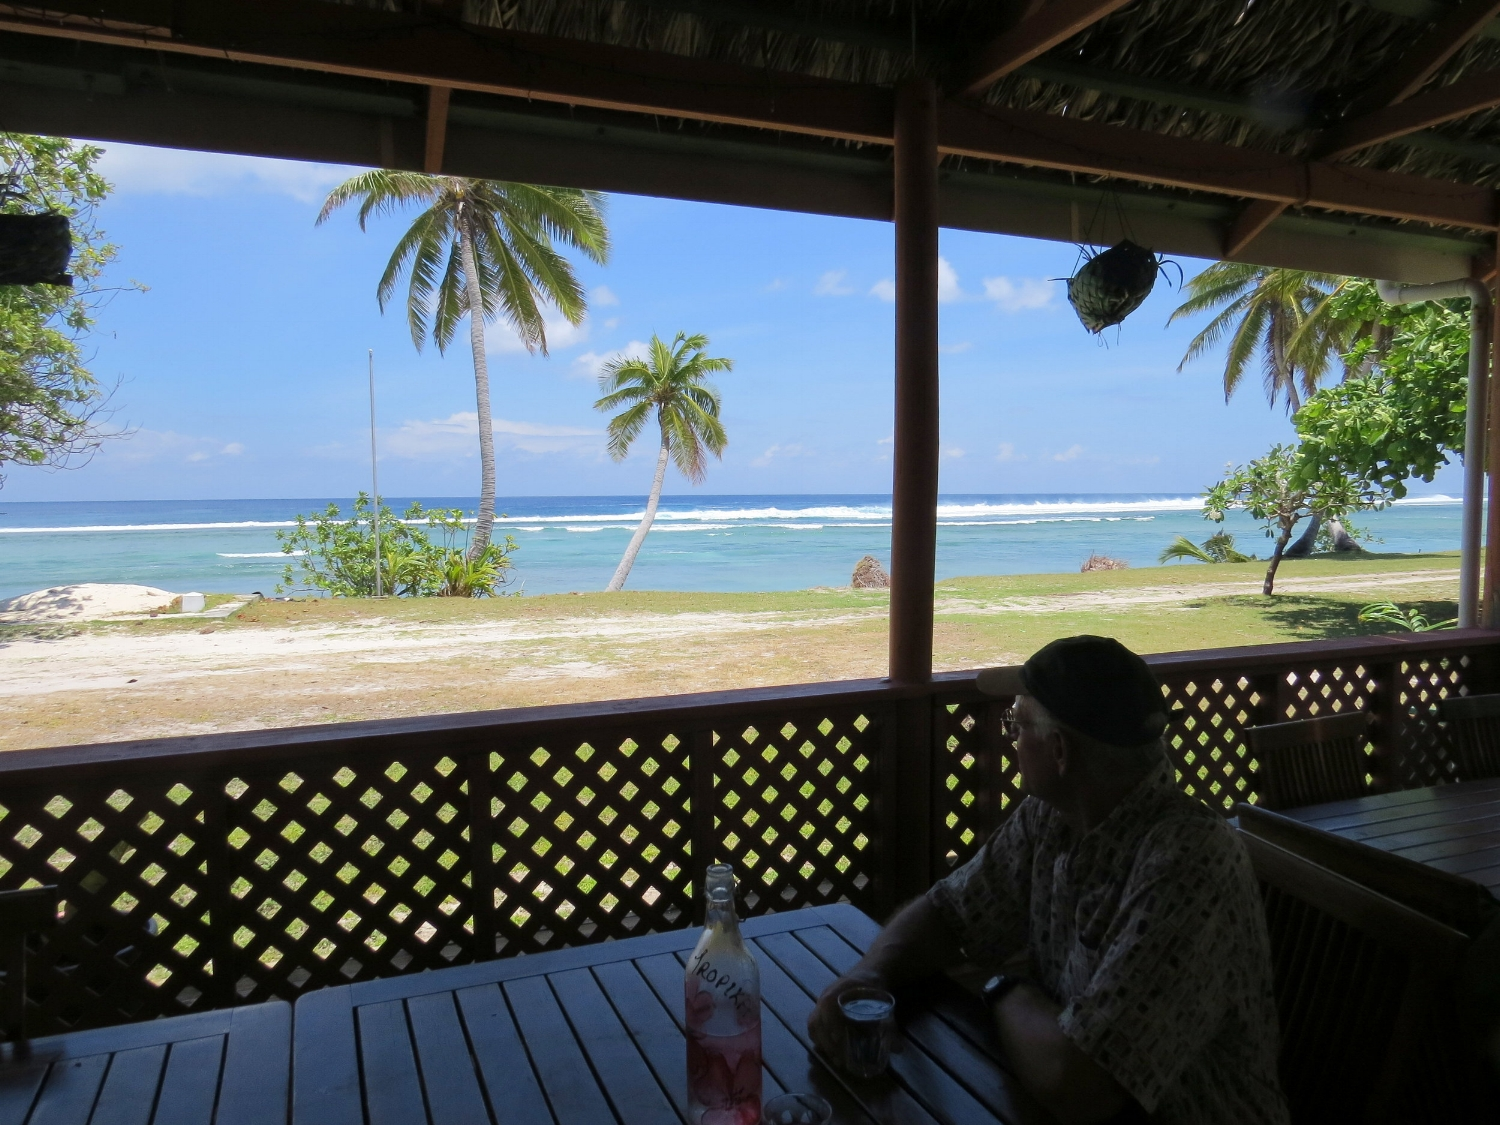 Lunch at the Tropika restaurant